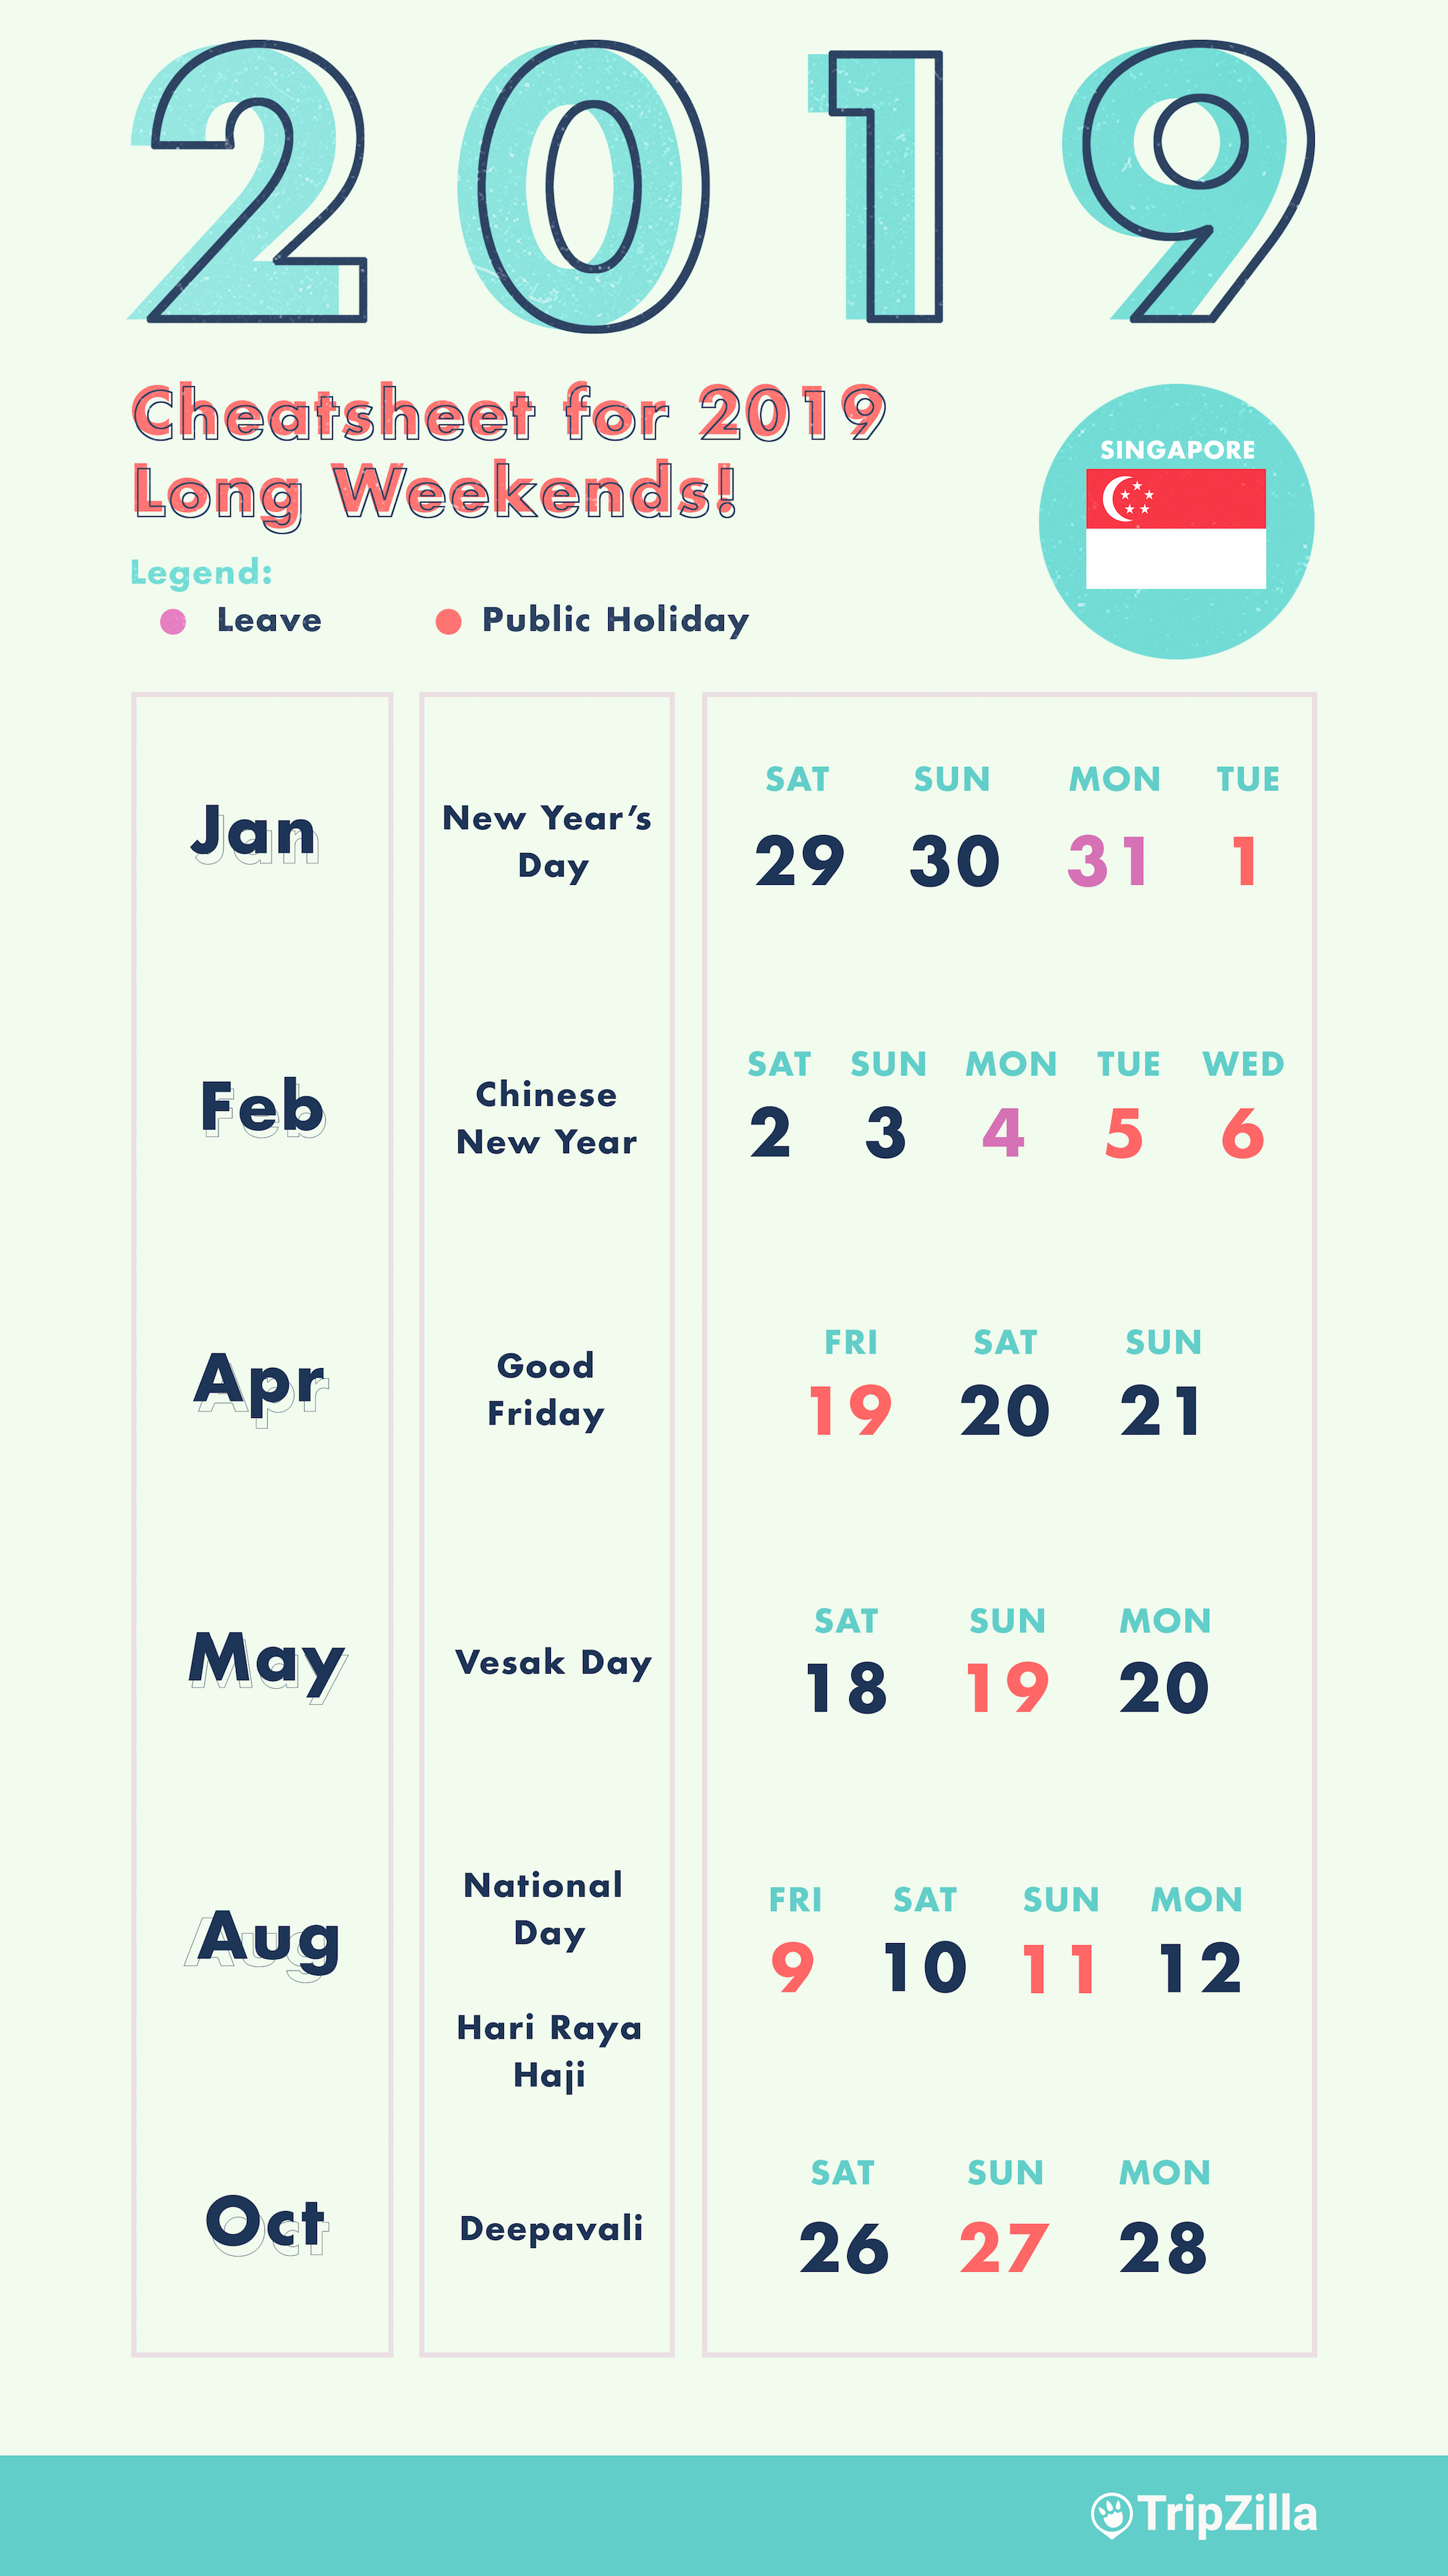 Year 2019 Calendar Philippines With Holidays 6 Long Weekends In Singapore Bonus Cheatsheet